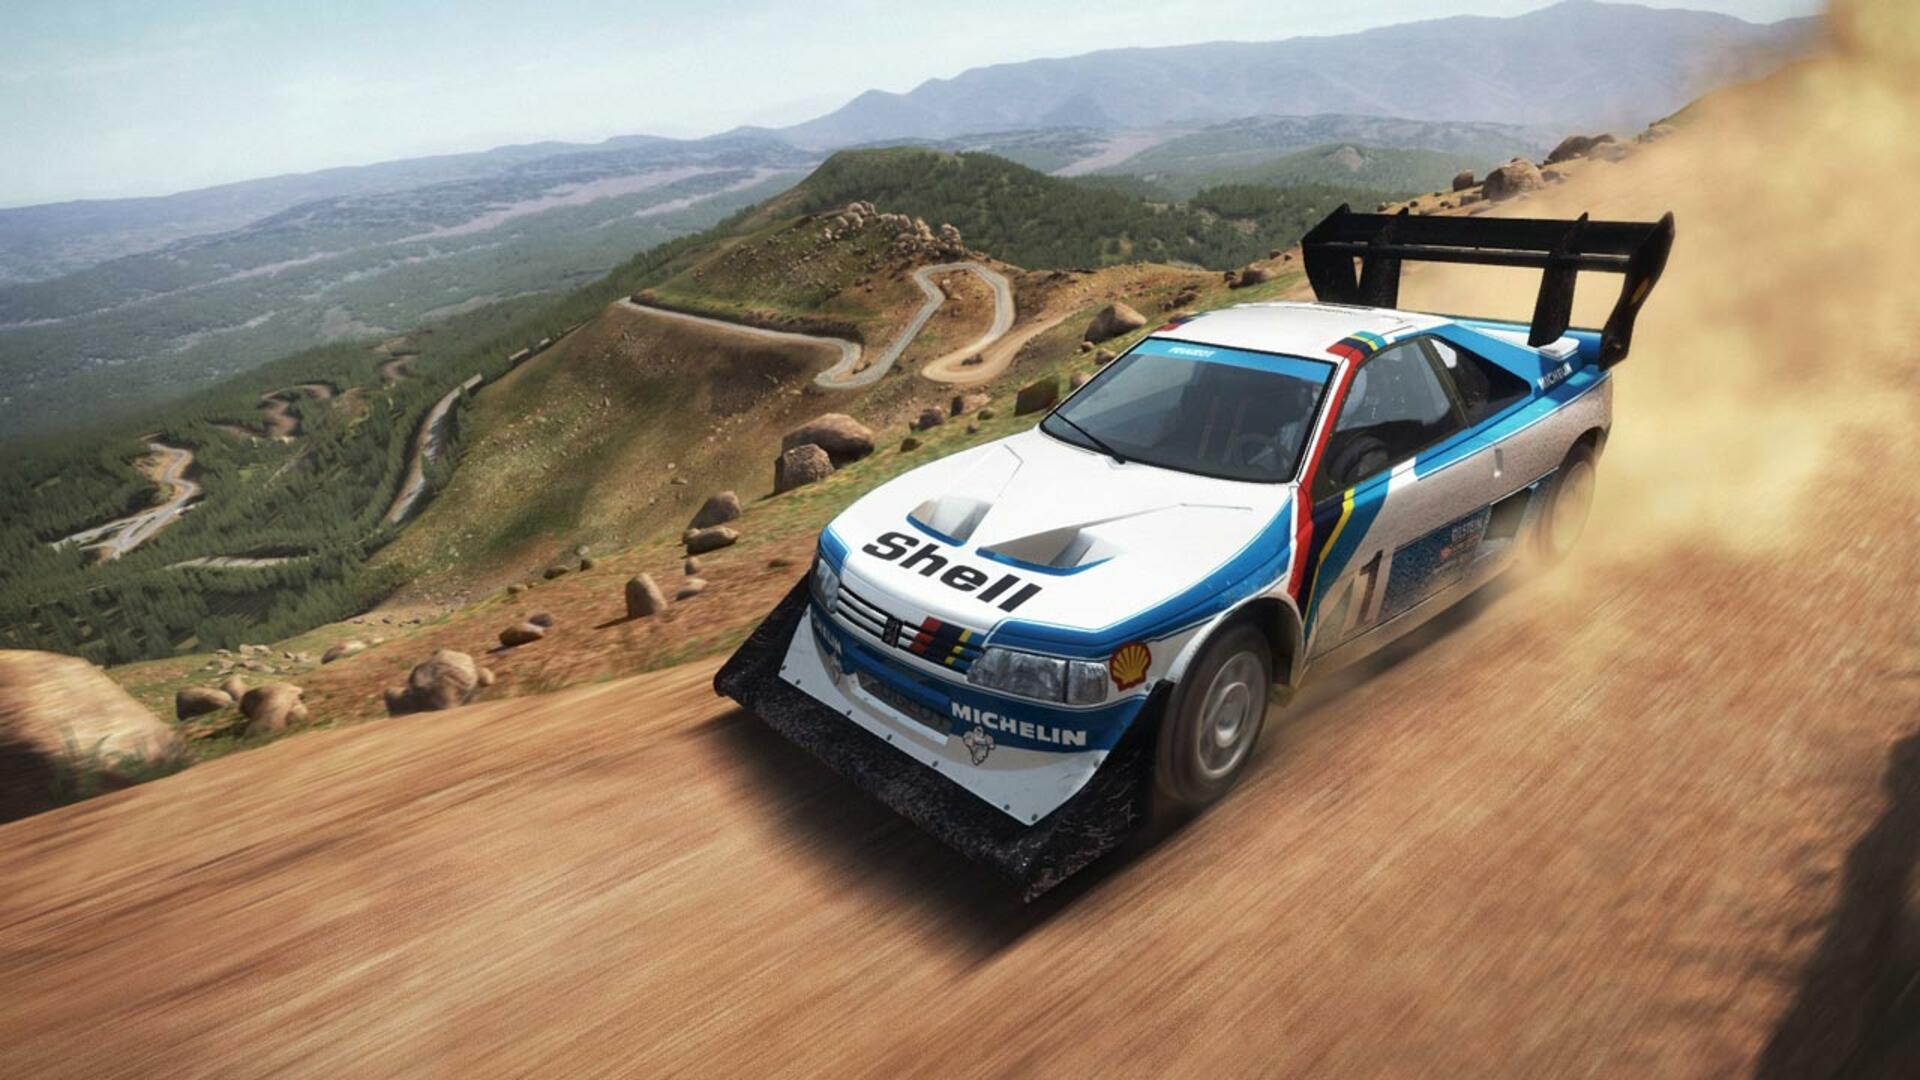 DiRT Rally PS4 Review: Hardcore Racer